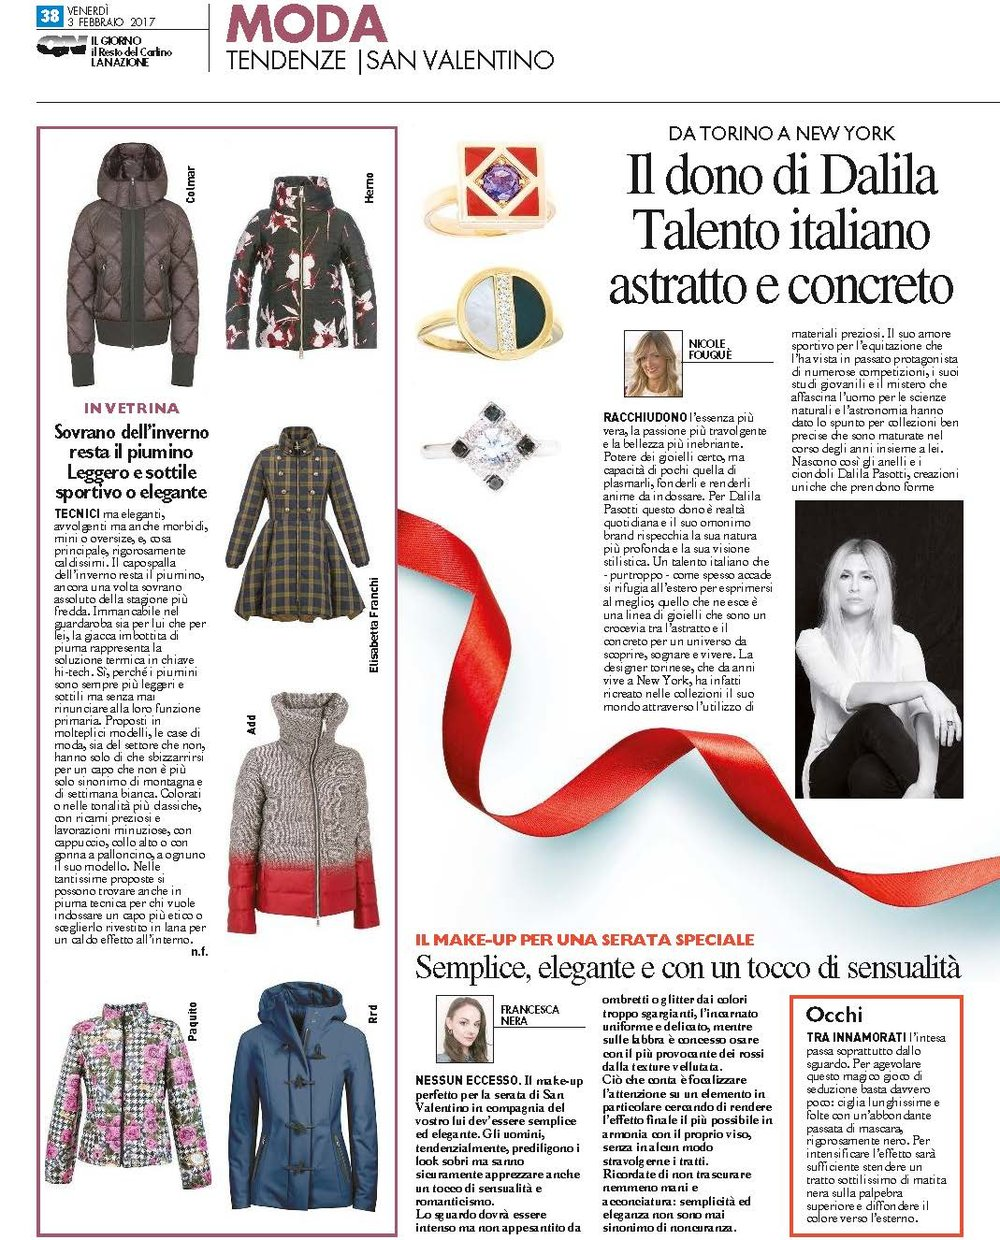 QUOTIDIANO NAZIONALE - ITALY, January 2017